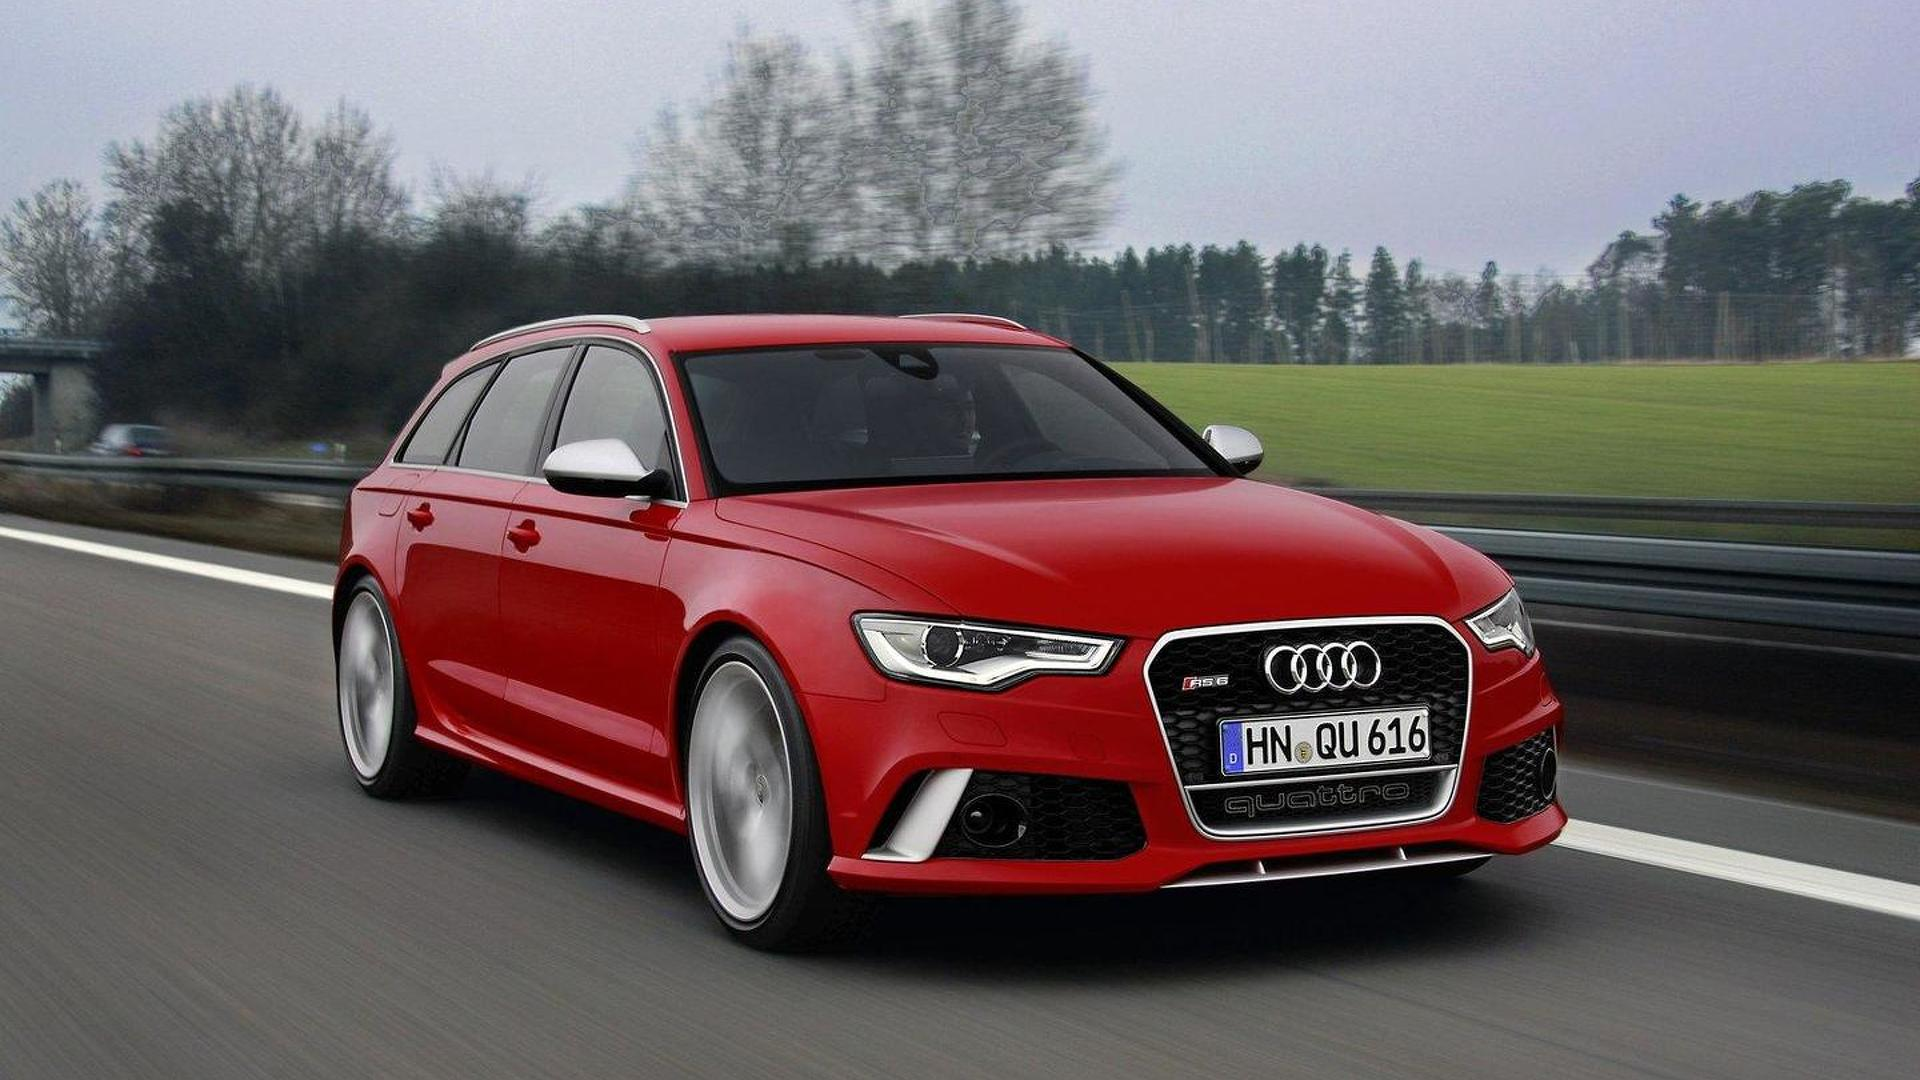 Abt Sportsline tunes the Audi RS6 Avant to 666 HP